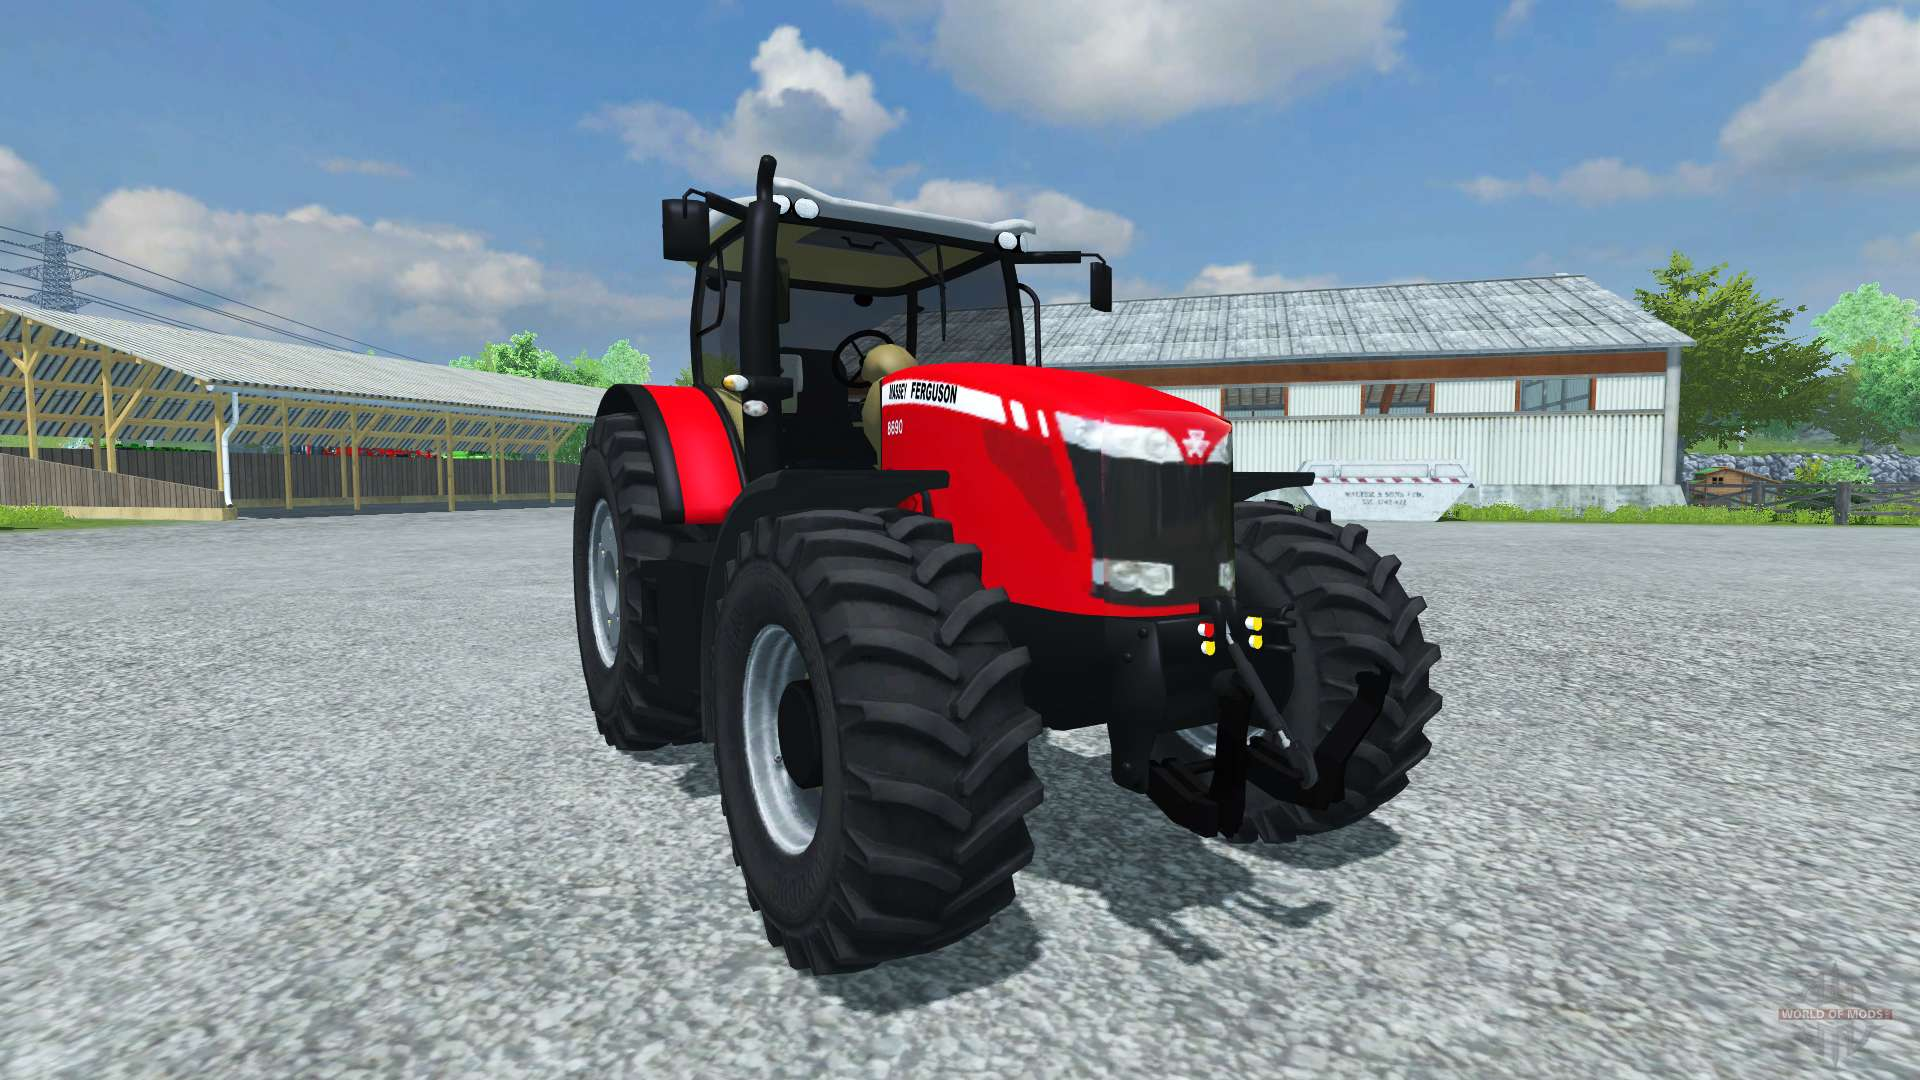 Farm Future as well Farmingsimulator Game also Agricultural Engineers moreover Tech in addition Review Image. on future tractors